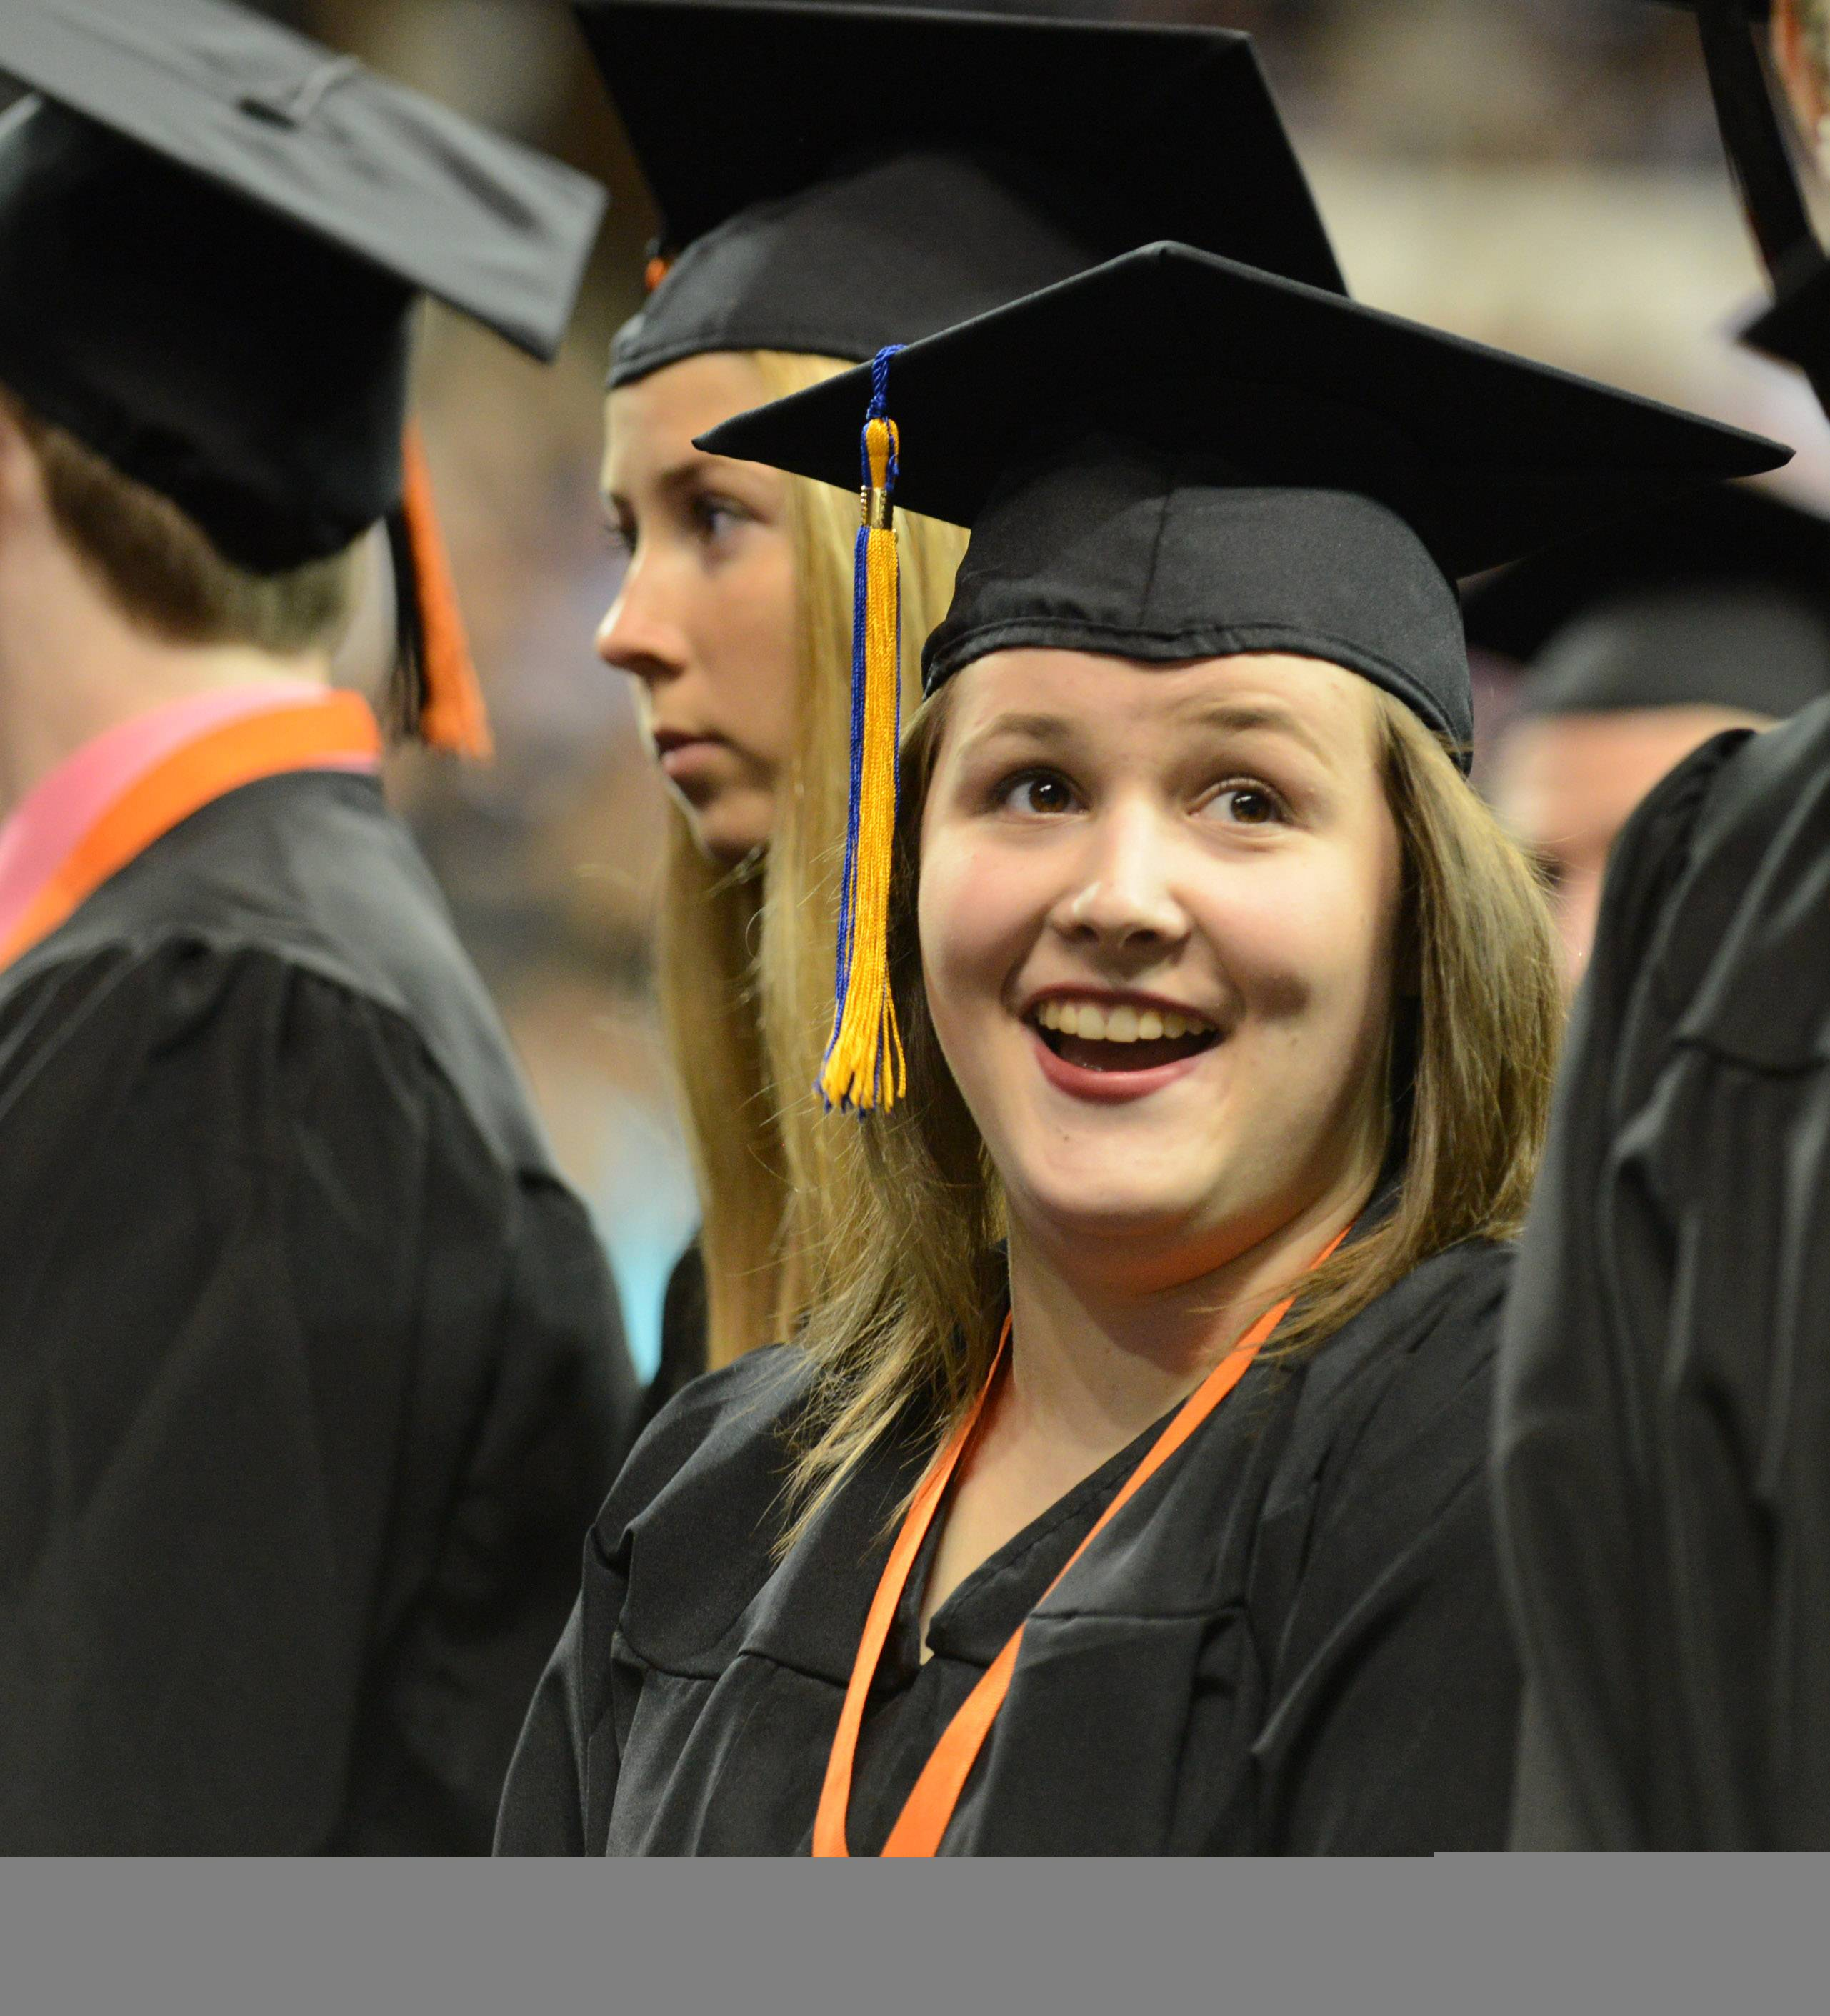 Images: St. Charles East High School graduation - DailyHerald.com